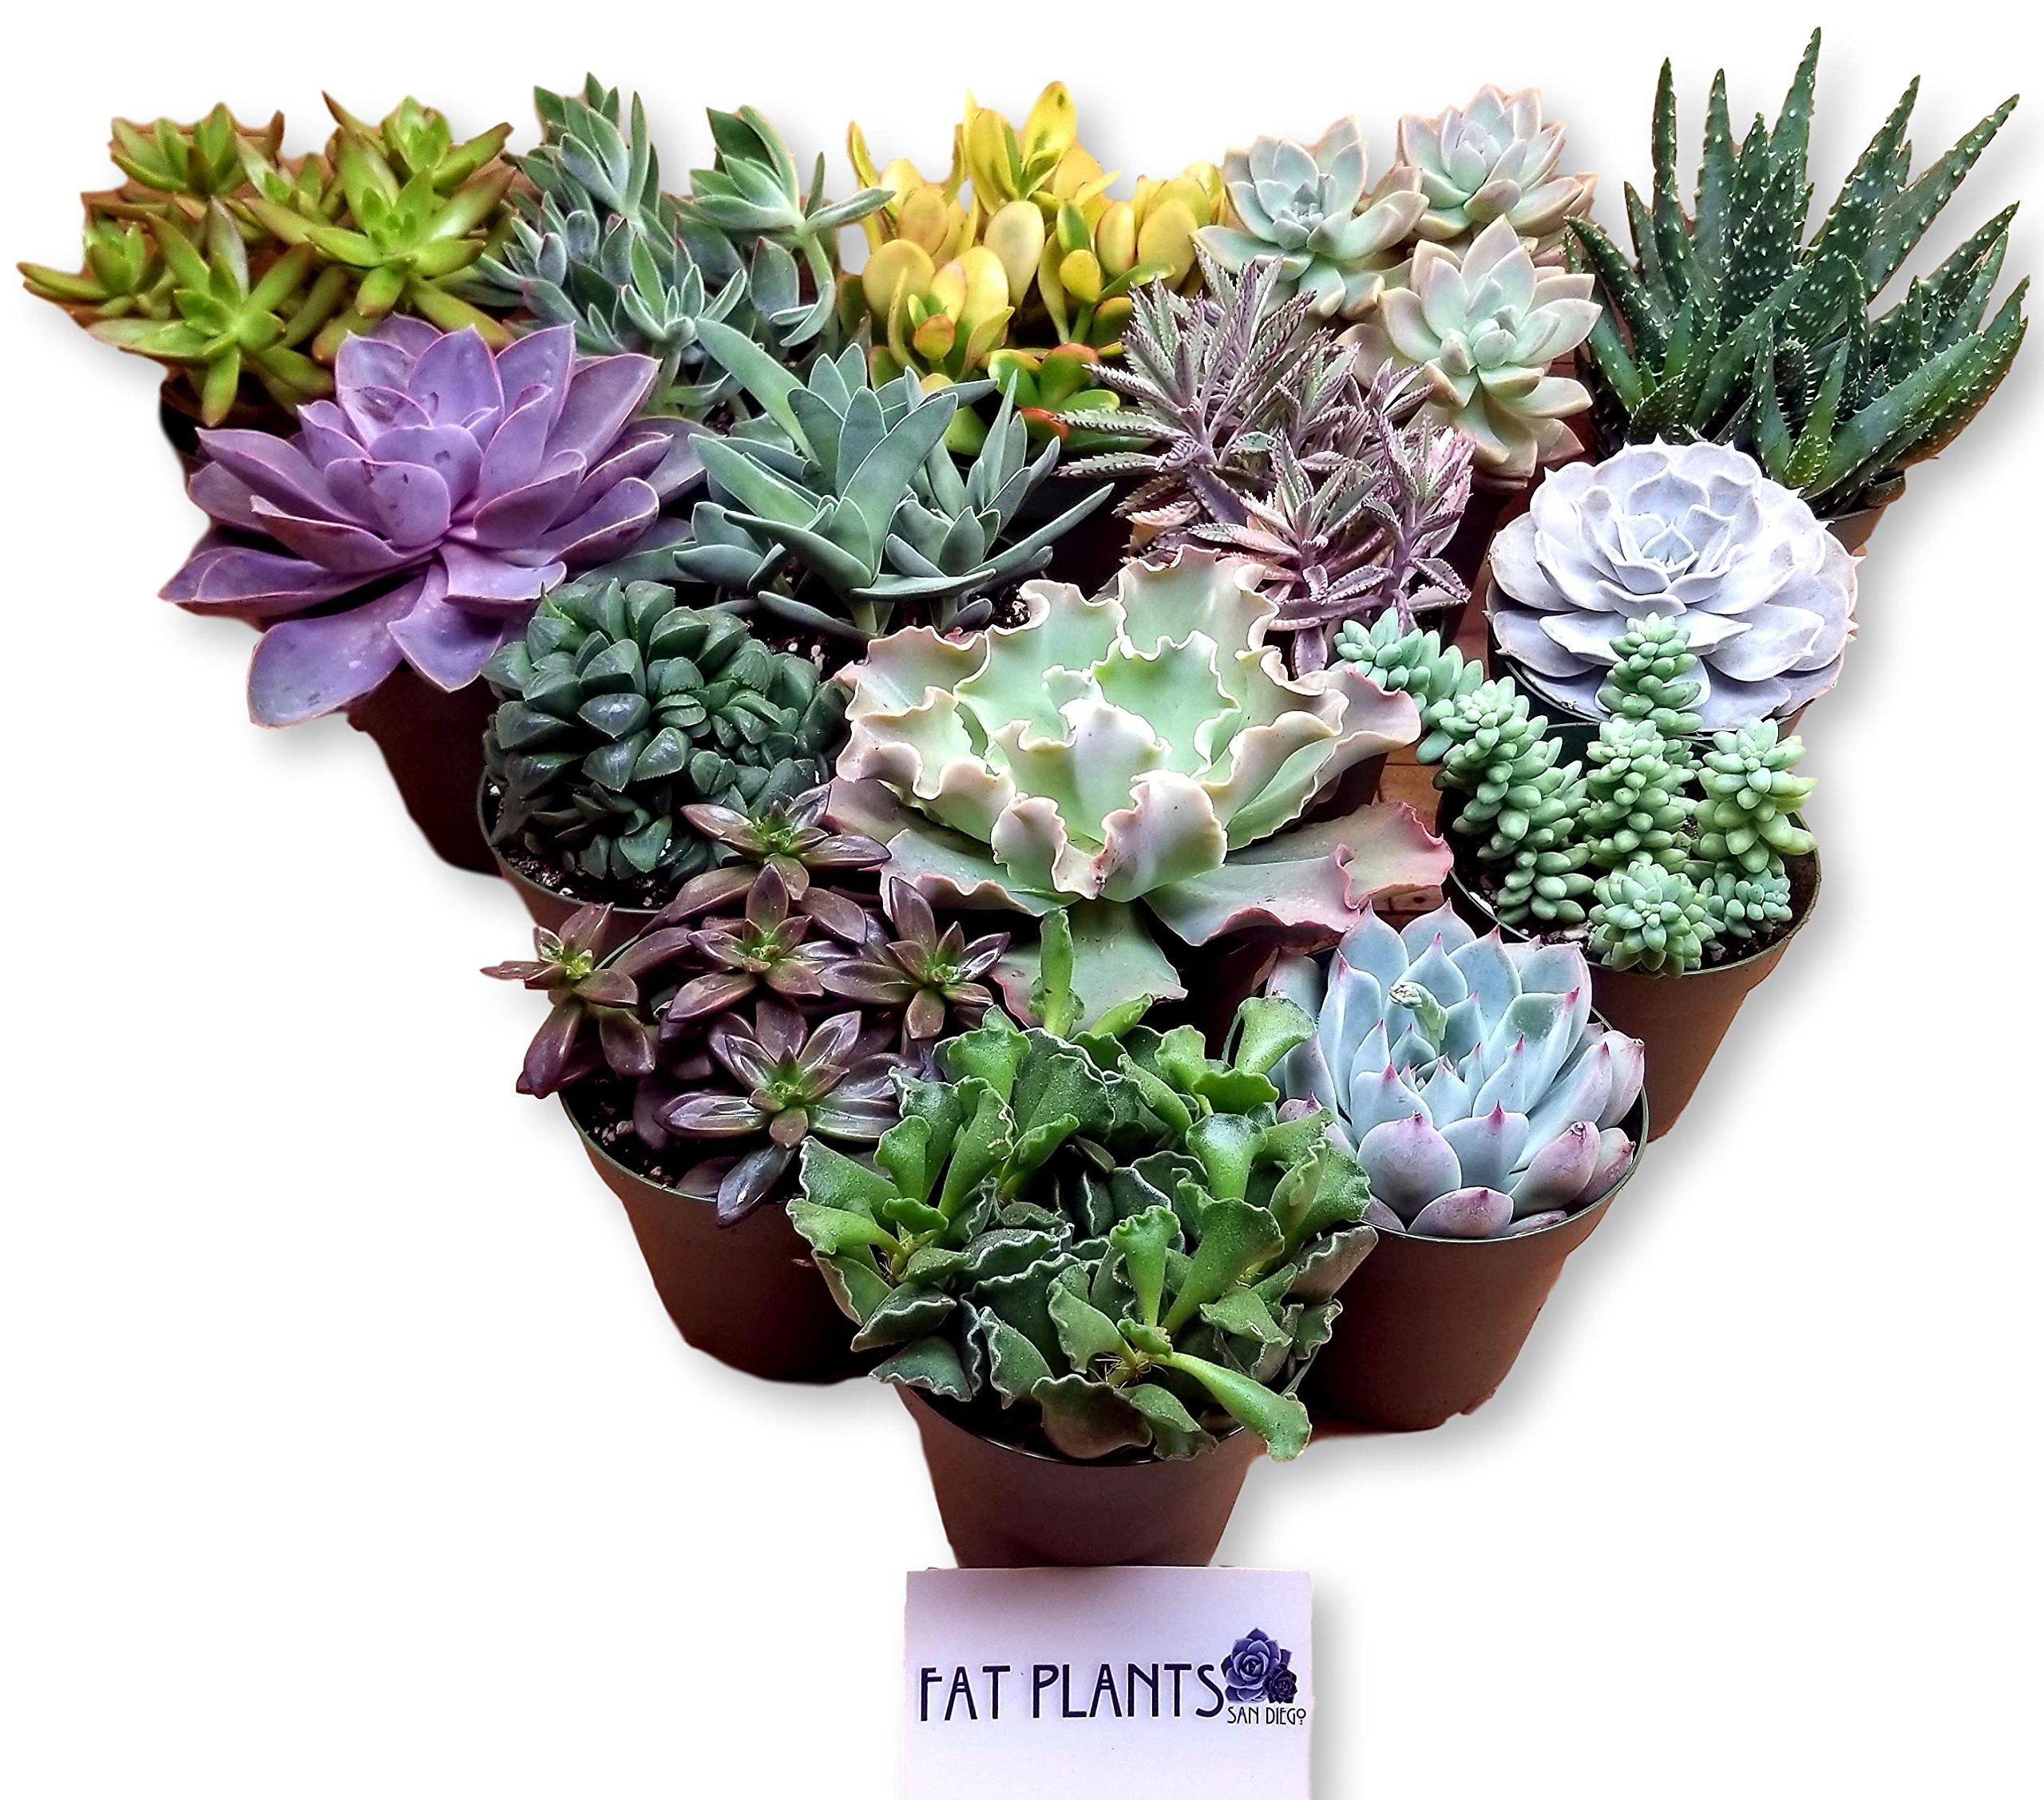 Fat Plants San Diego Large Succulent Plant Collection